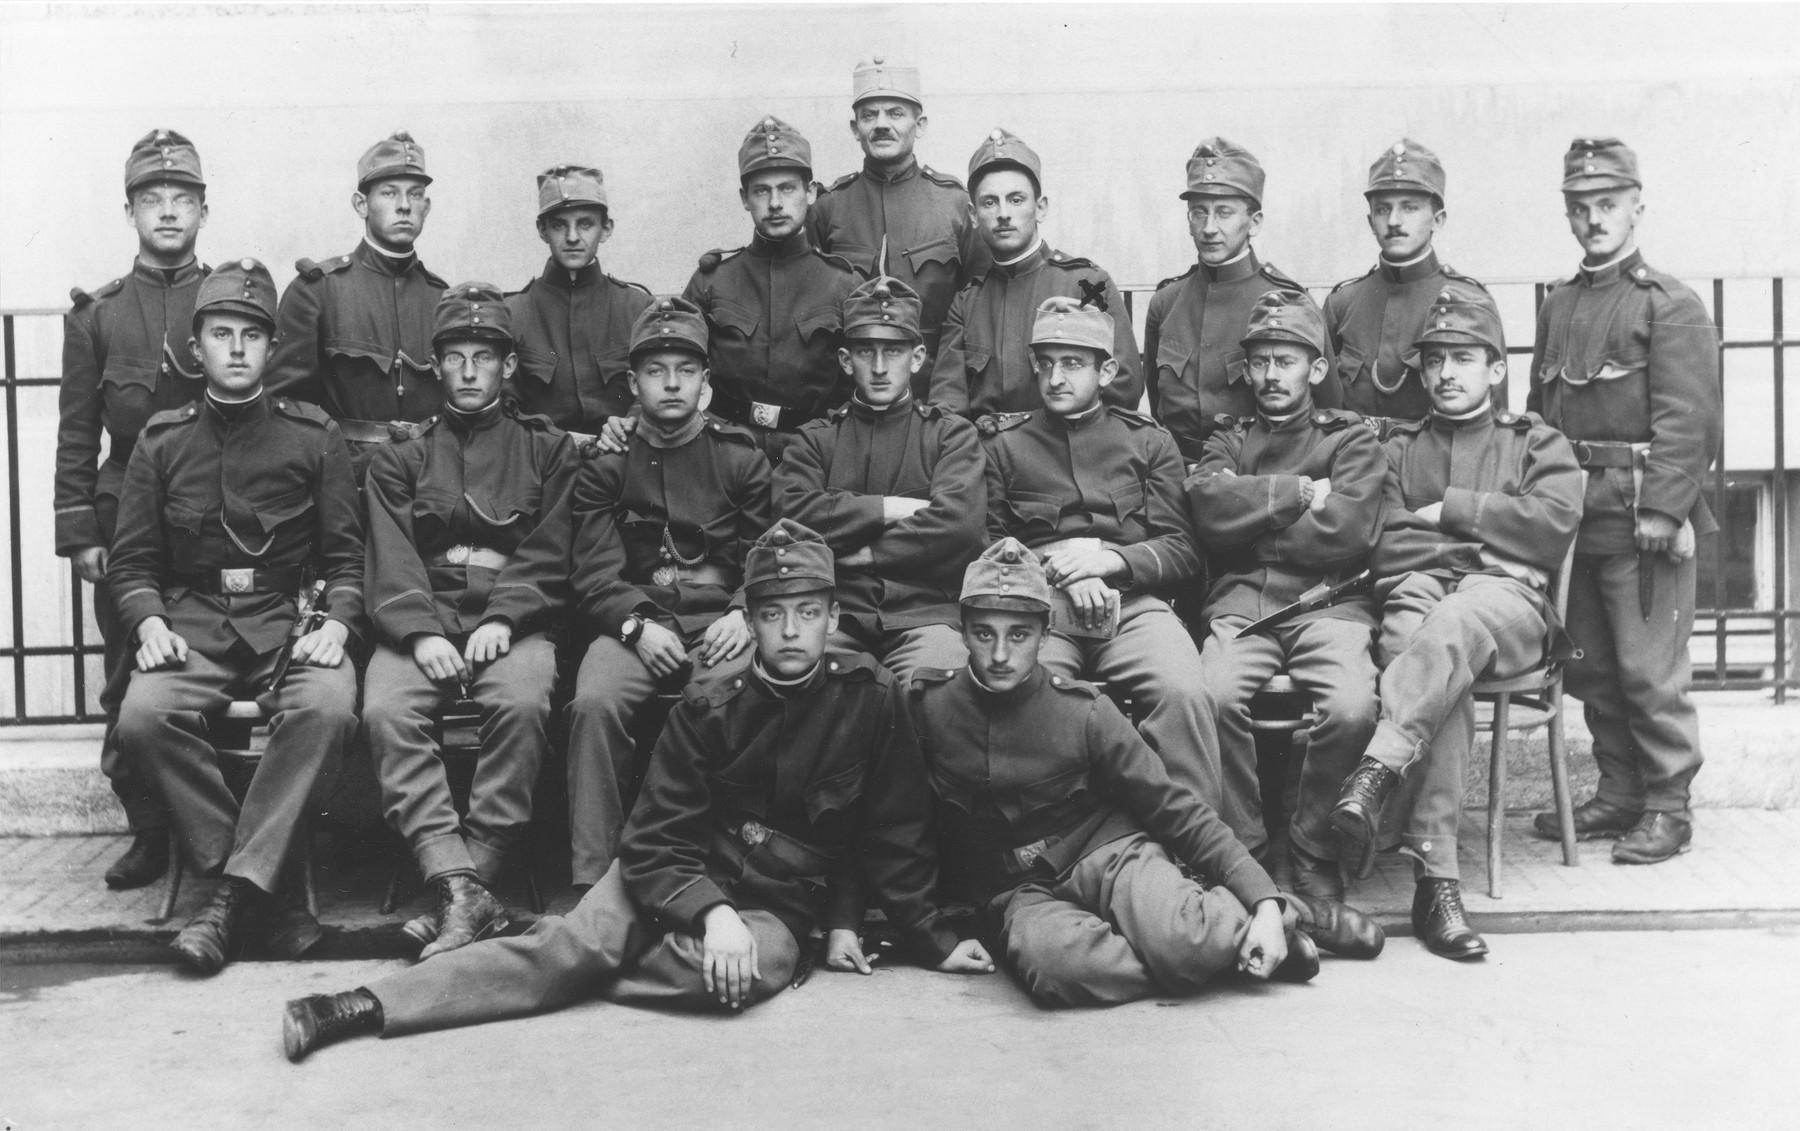 Walther Mayer (second row, third from the right) poses with his military unit in the Austro-Hungarian army.